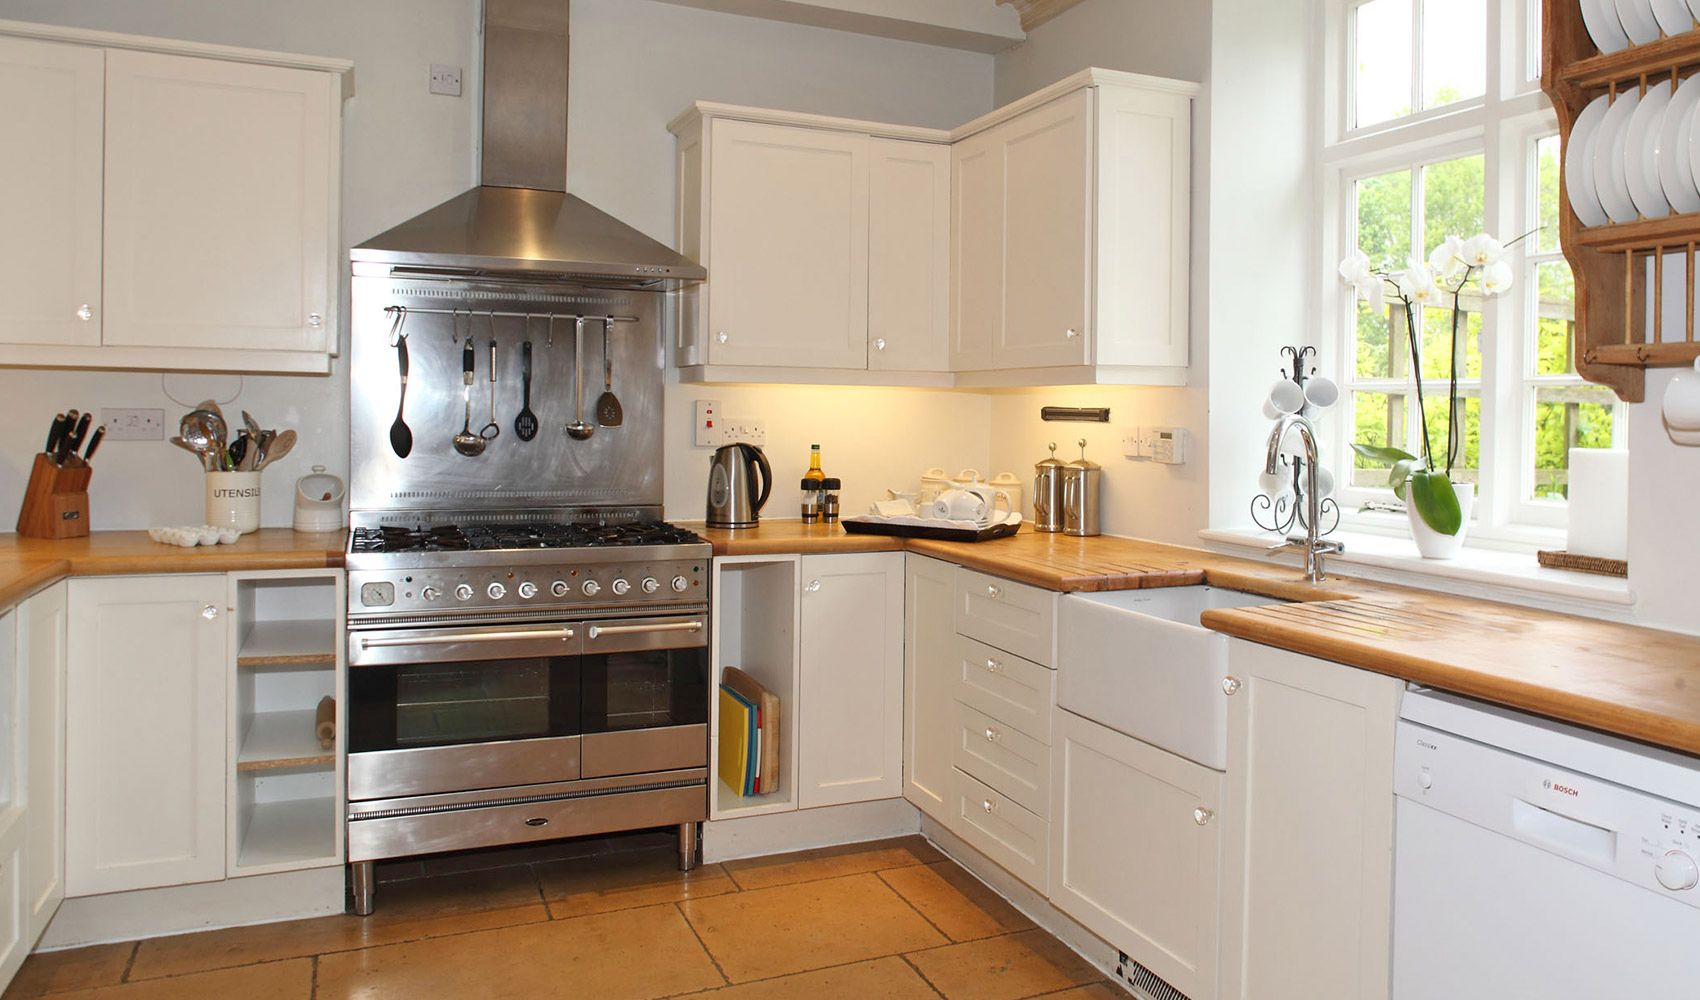 Ground floor: Well equipped kitchen in the open plan living area